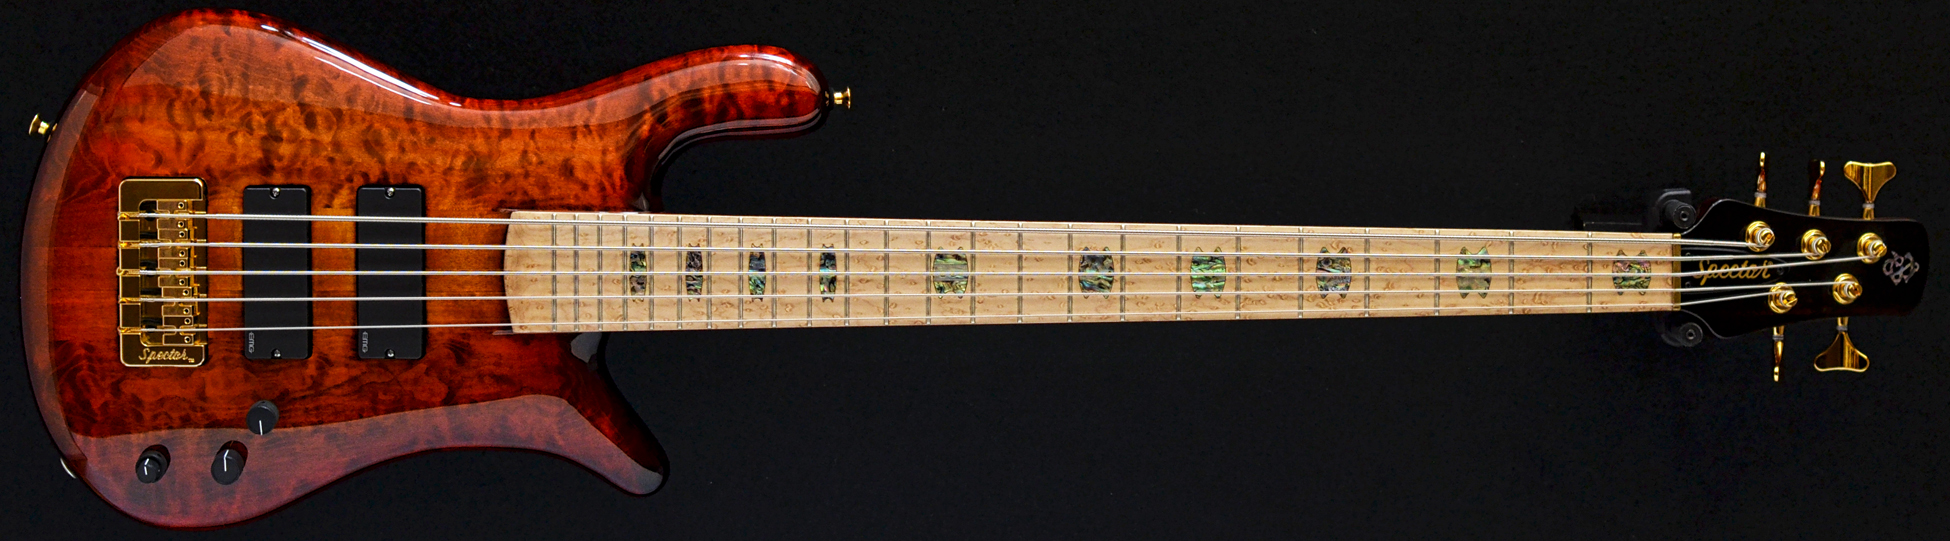 second hand and ex demo bass guitar stock spector ns5 h2 se iii five string bass for sale. Black Bedroom Furniture Sets. Home Design Ideas